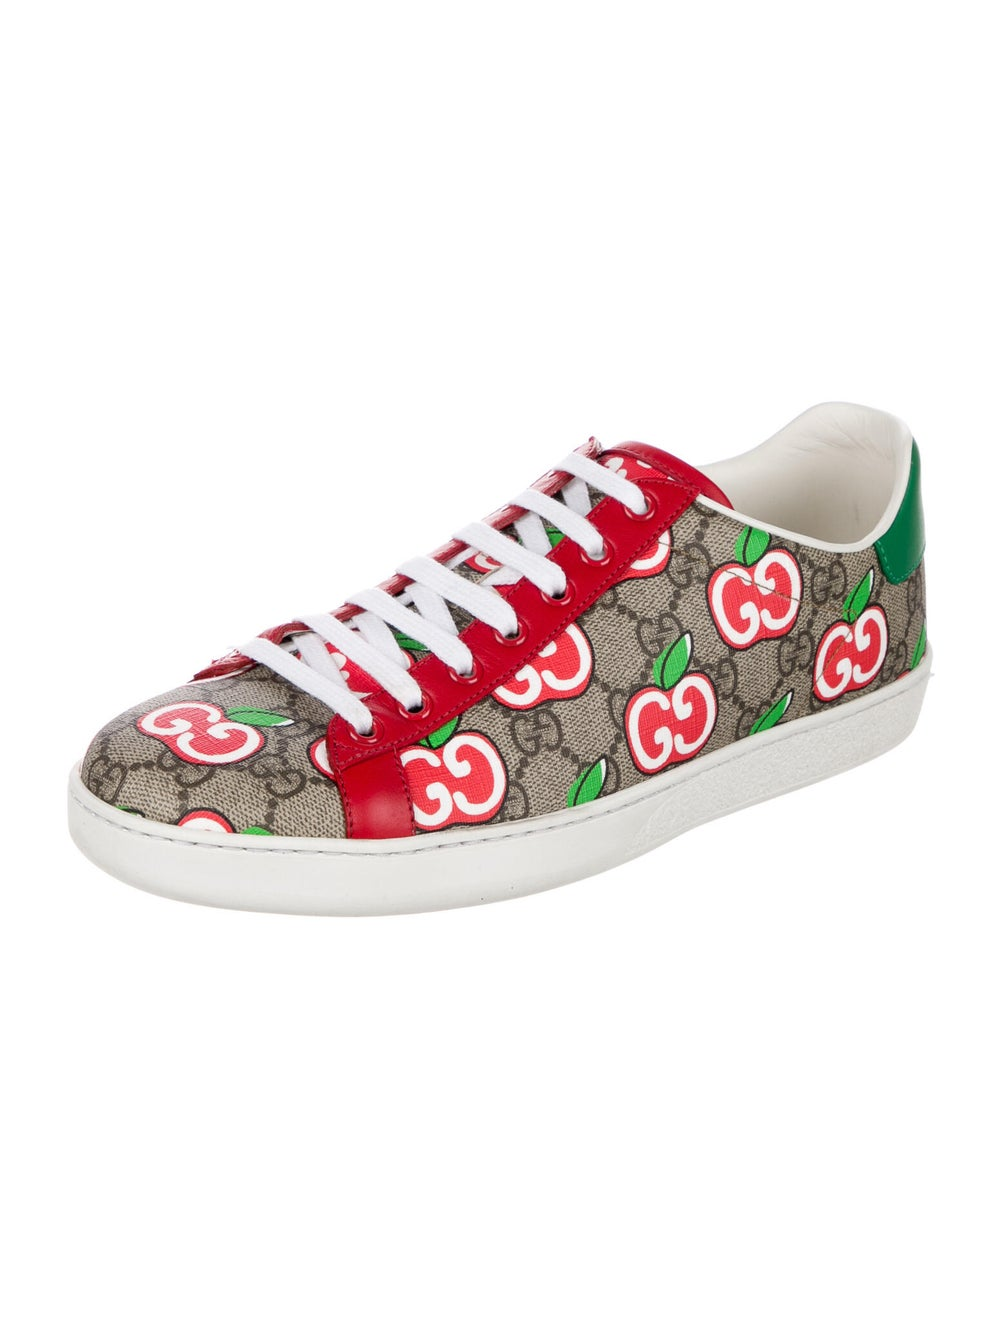 Gucci GG Apple Sneakers Sneakers - image 2